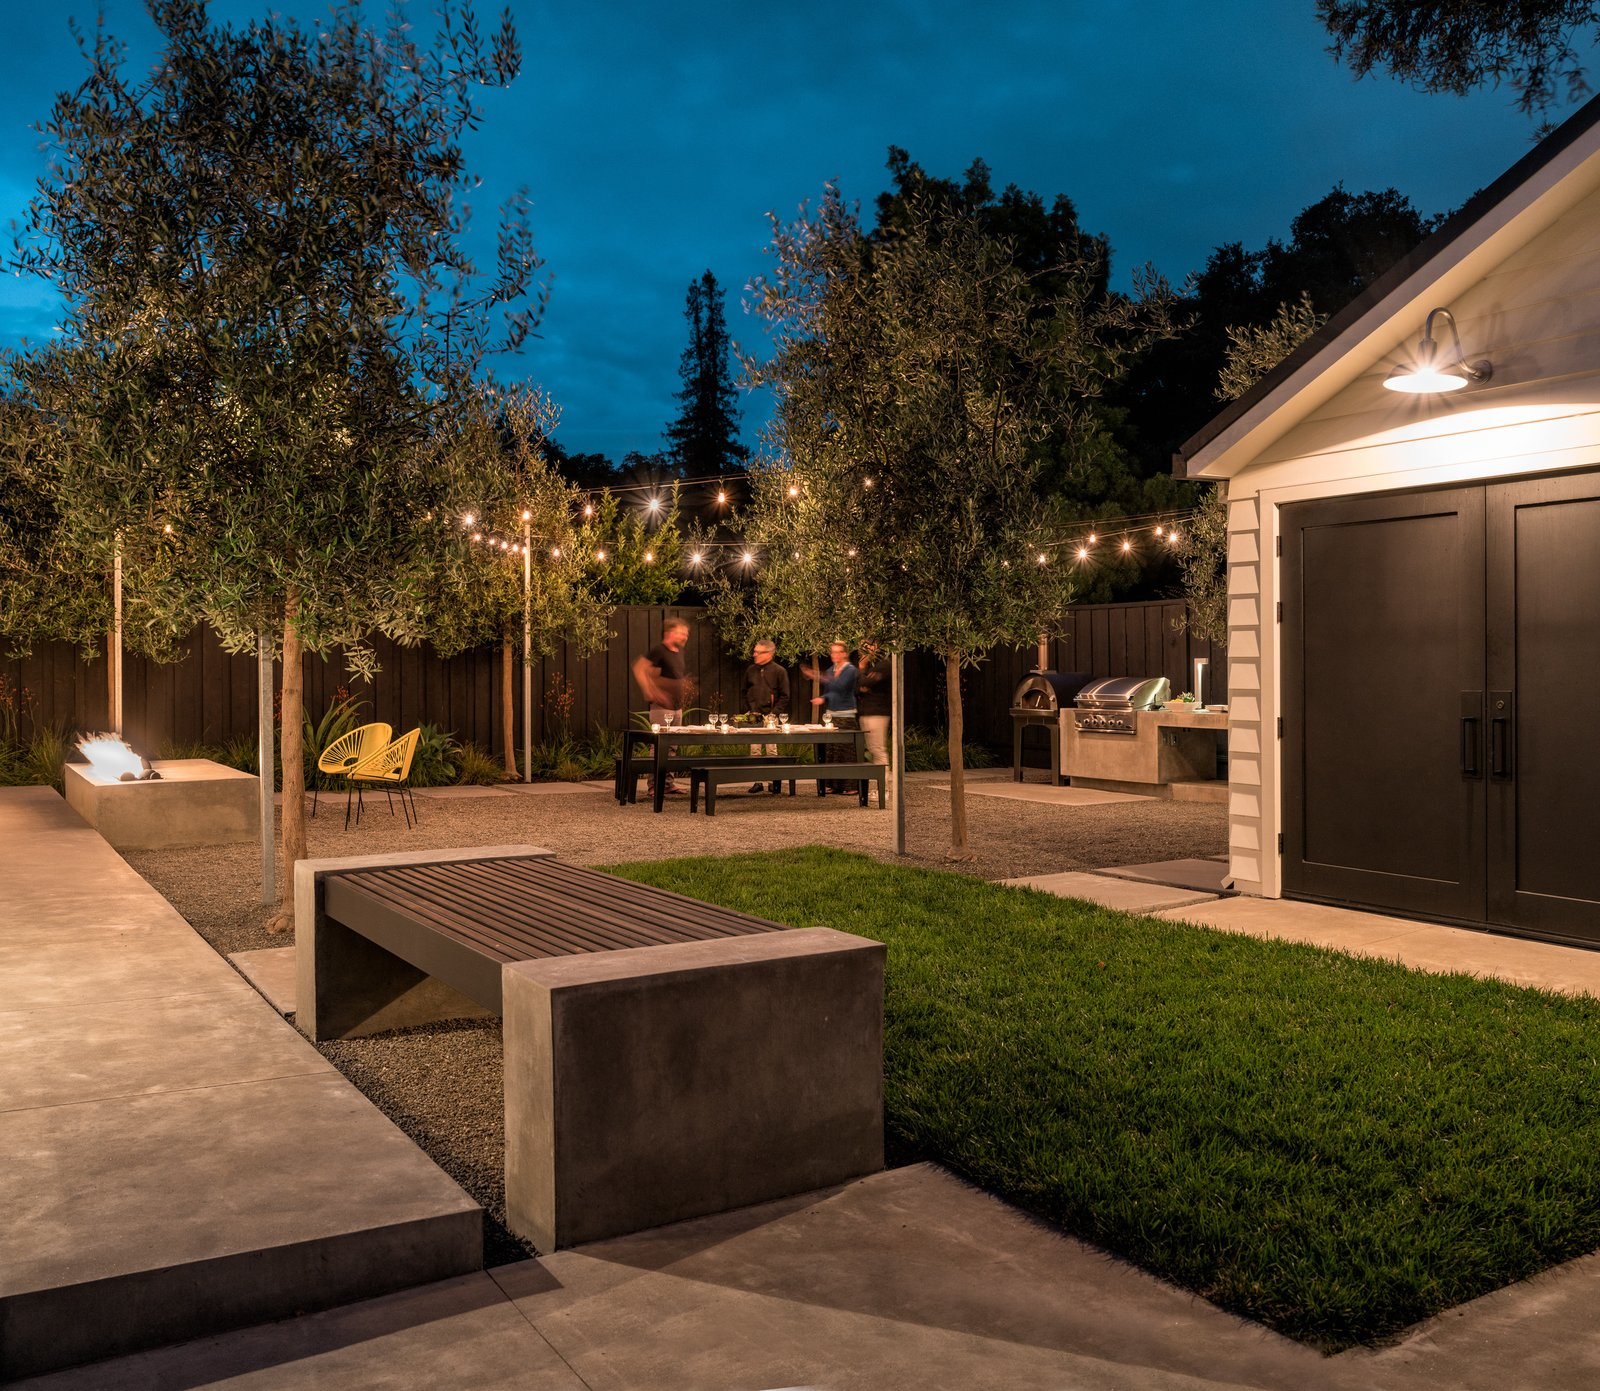 There is room to set up seating for an outdoor movie projected on side wall of the garage  Refreshing Bungalow by Randy Thueme Design